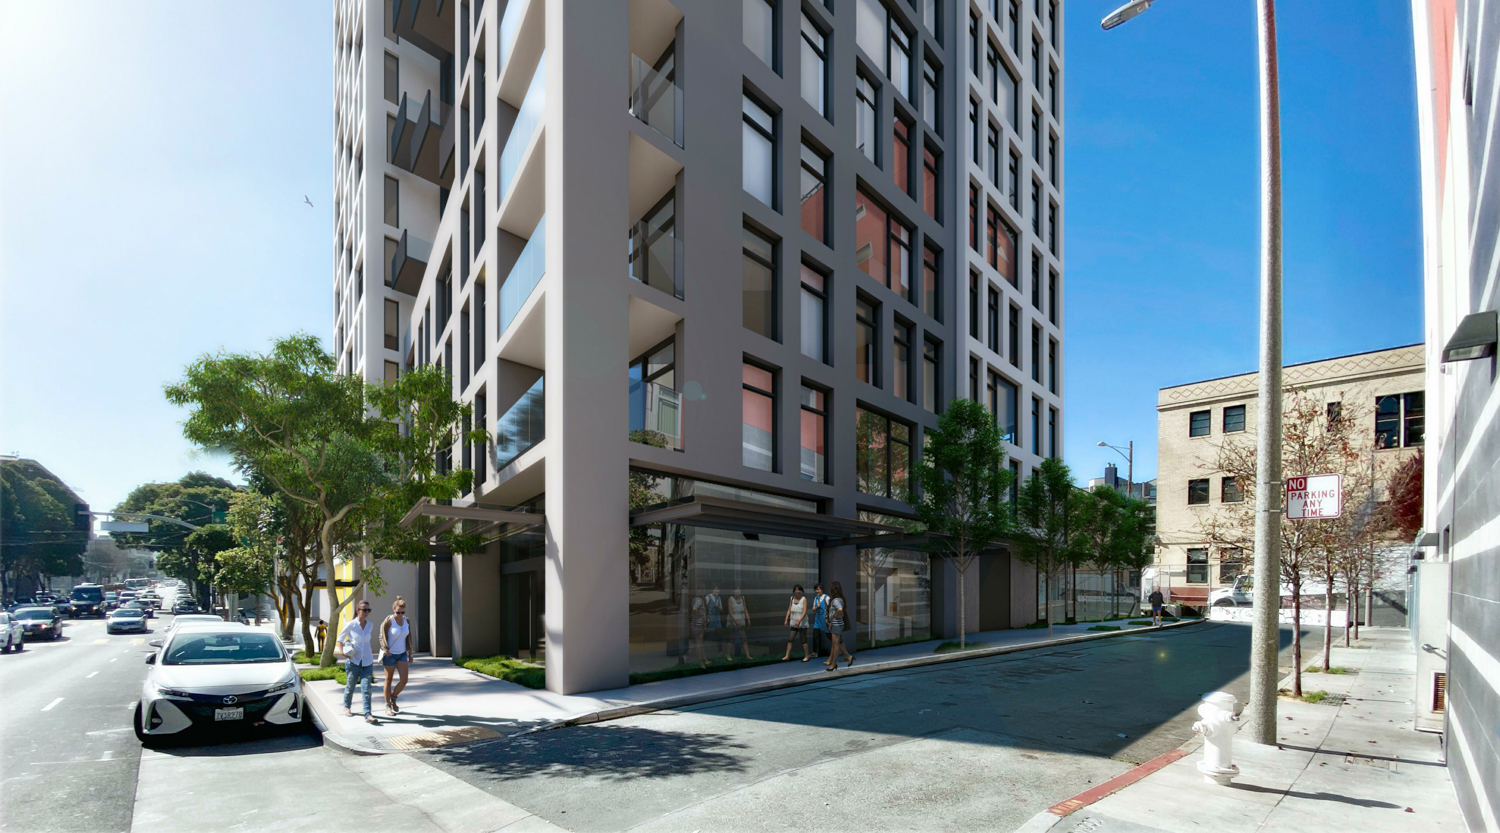 600 McAllister Street view at Franklin and Redwood, rendering by David Baker Architects